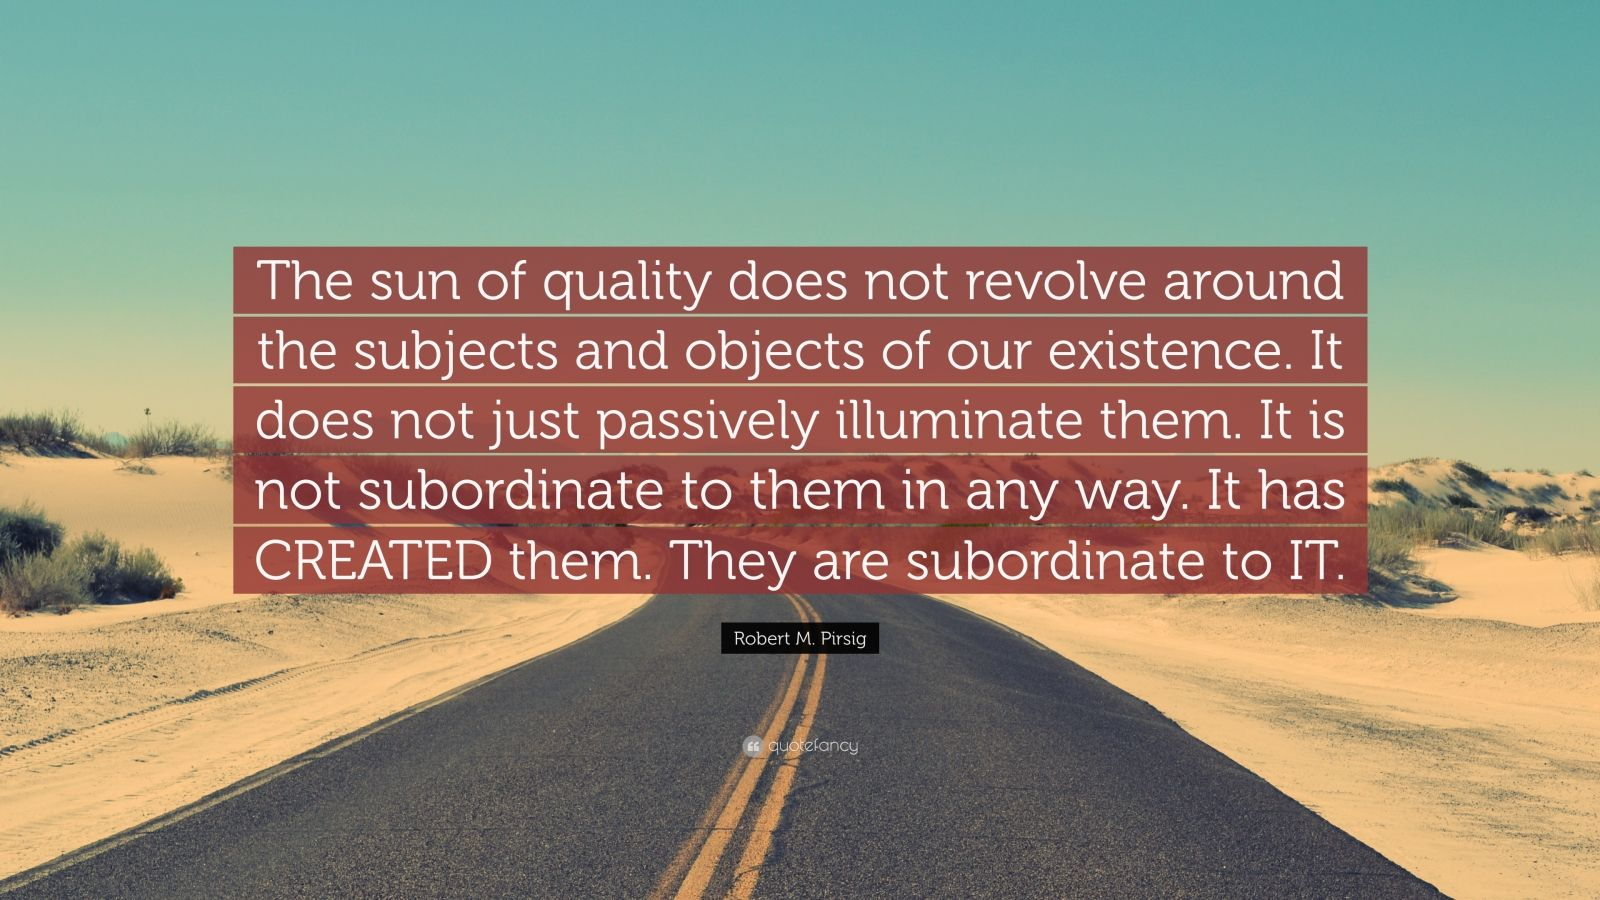 """Robert M. Pirsig Quote: """"The sun of quality does not revolve around the subjects and objects of our existence. It does not just passively illuminate them. It is not subordinate to them in any way. It has CREATED them. They are subordinate to IT."""""""